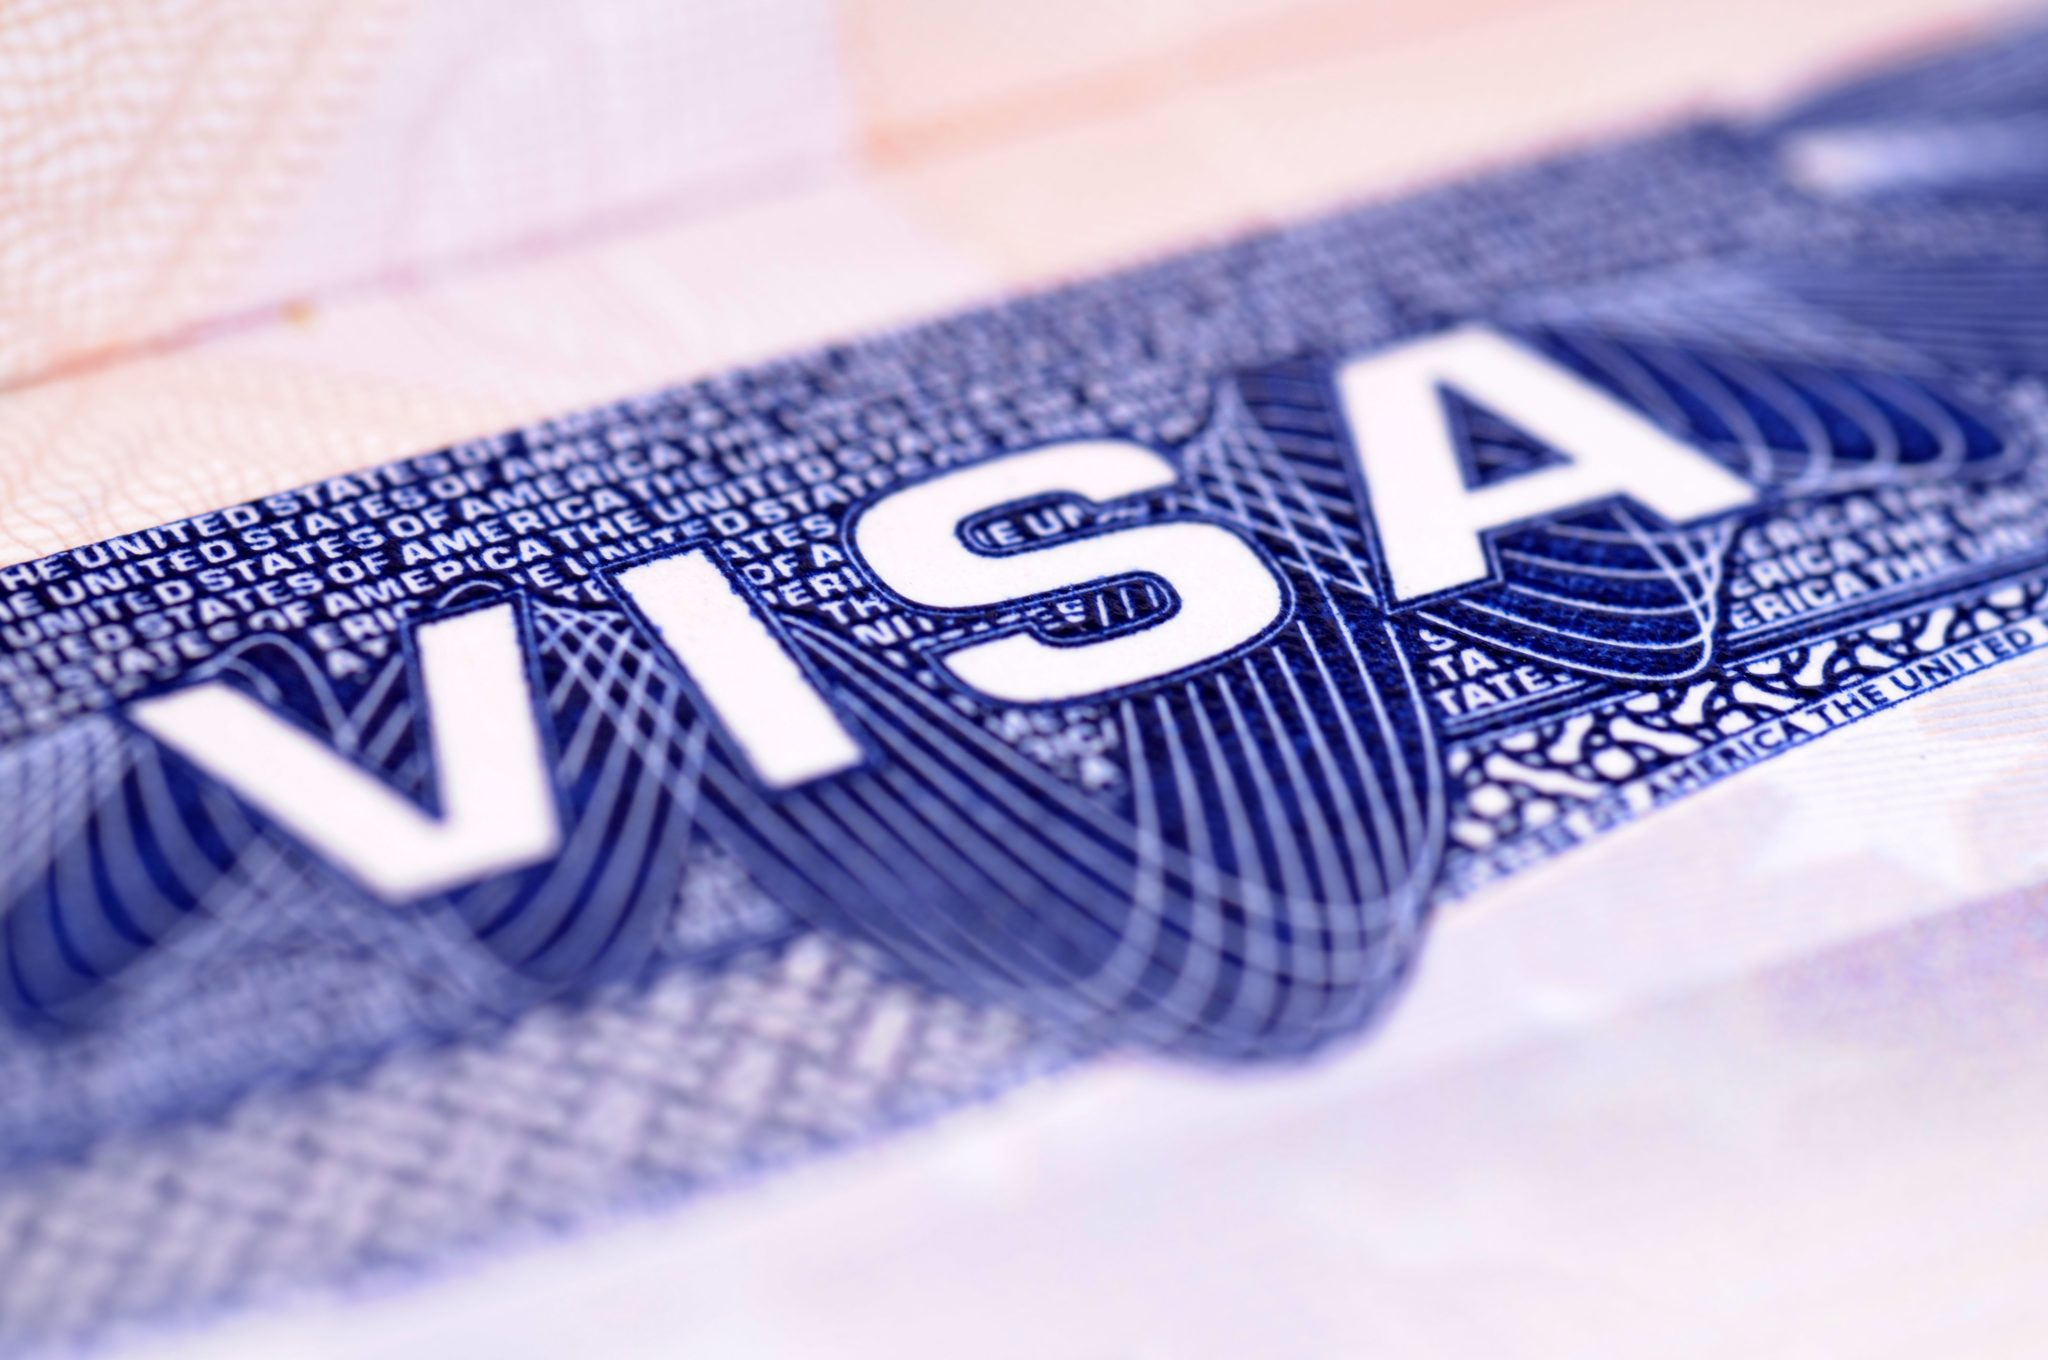 Golden Visa is a term used for all residence by investment programs where someone makes an investment in the country and then receives special treatment in the immigration process